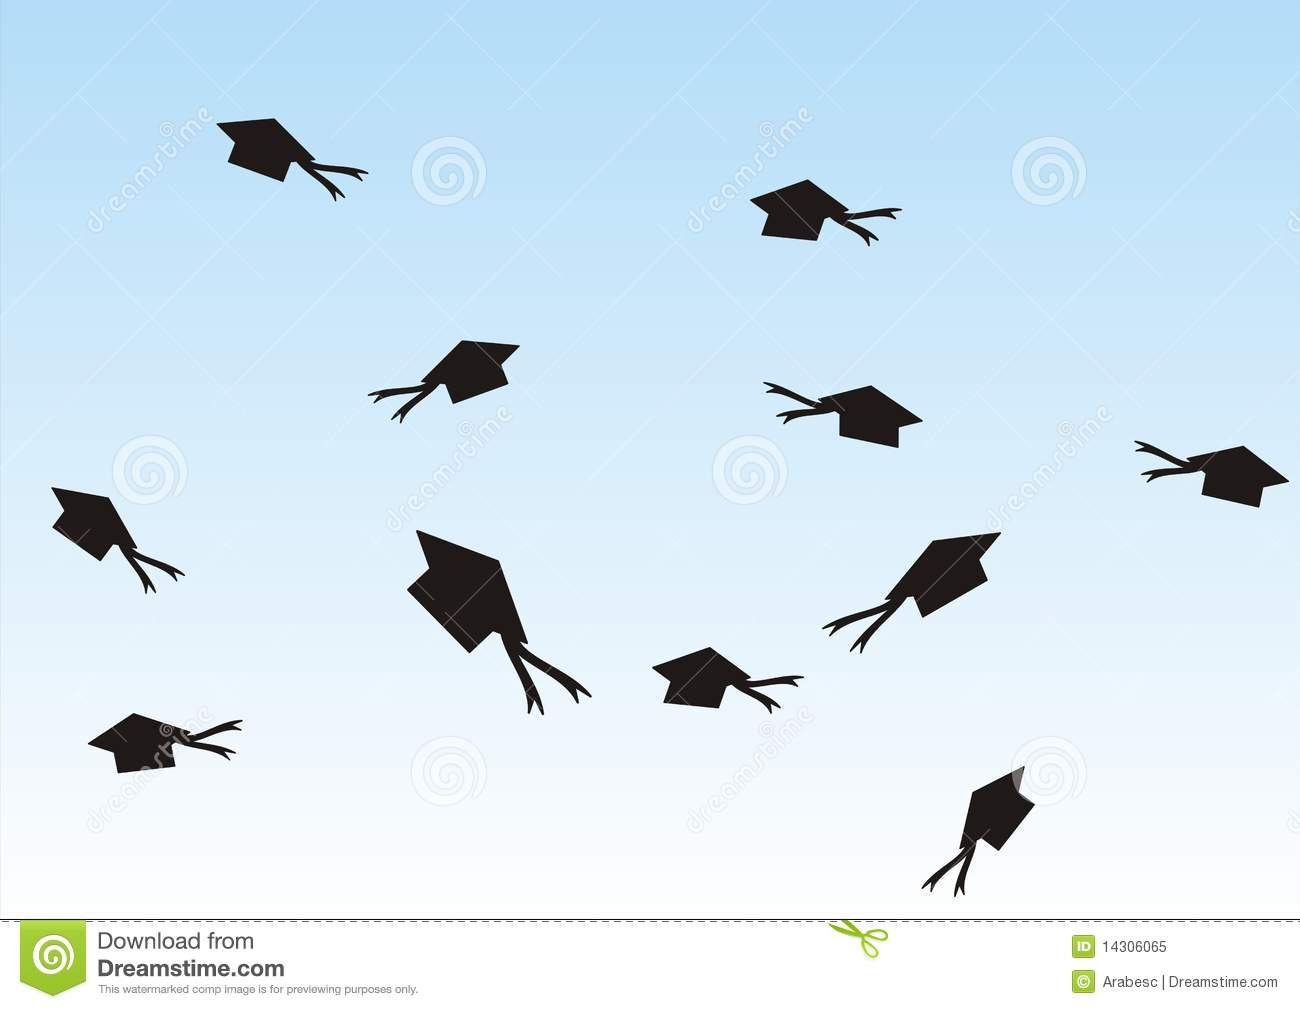 Graduation hats in the air stock vector. Illustration of ...